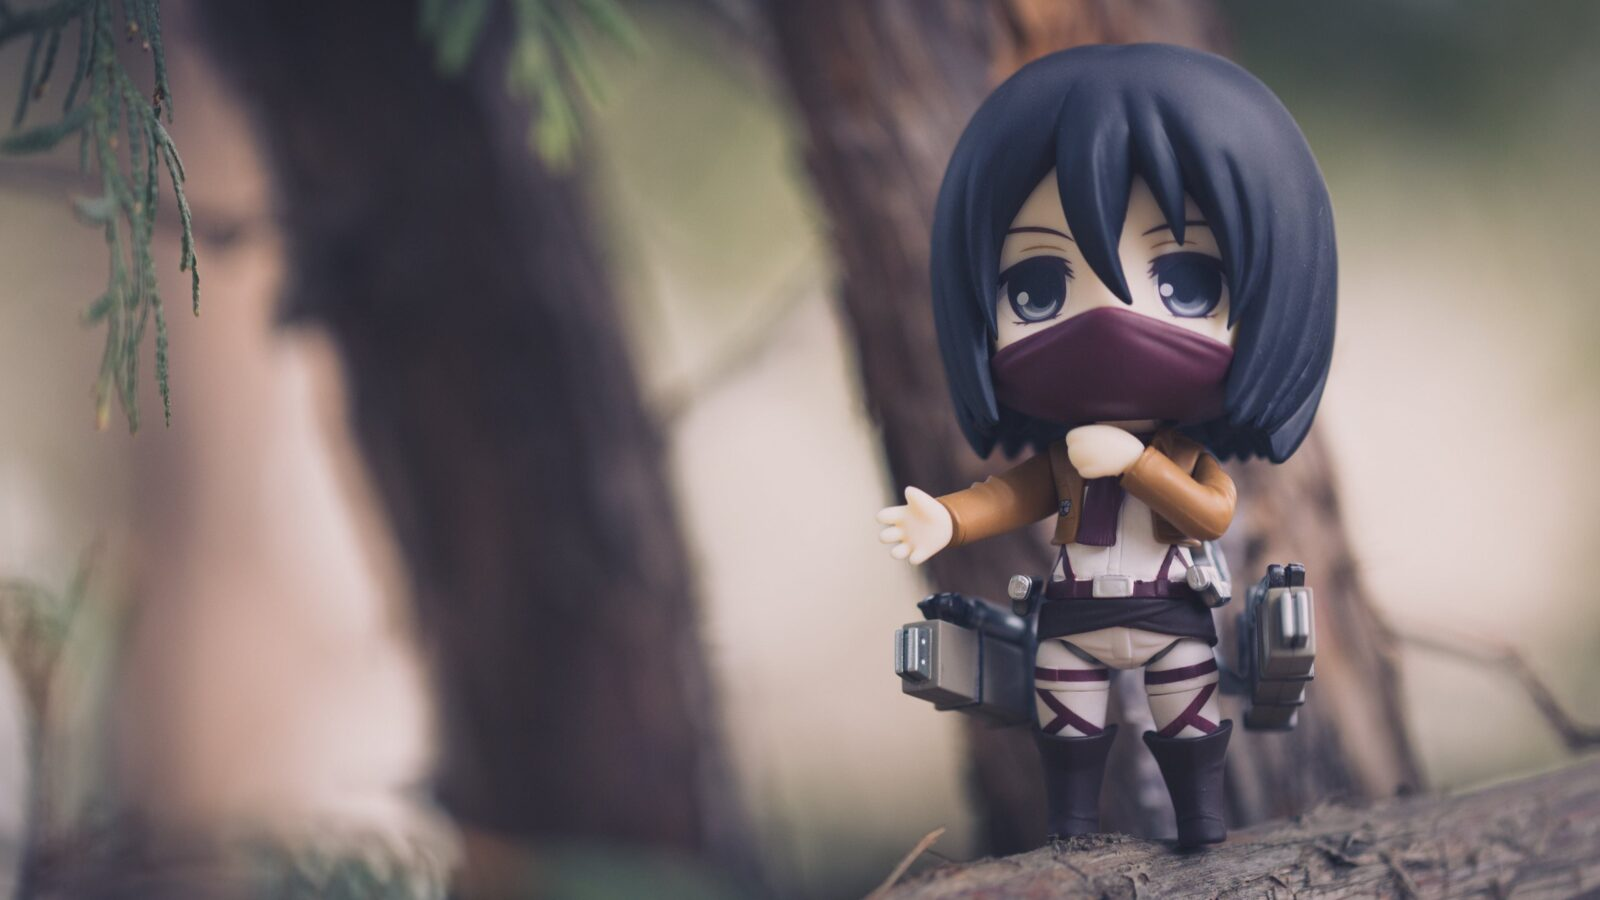 35 Mikasa Ackerman Wallpapers Hd Download